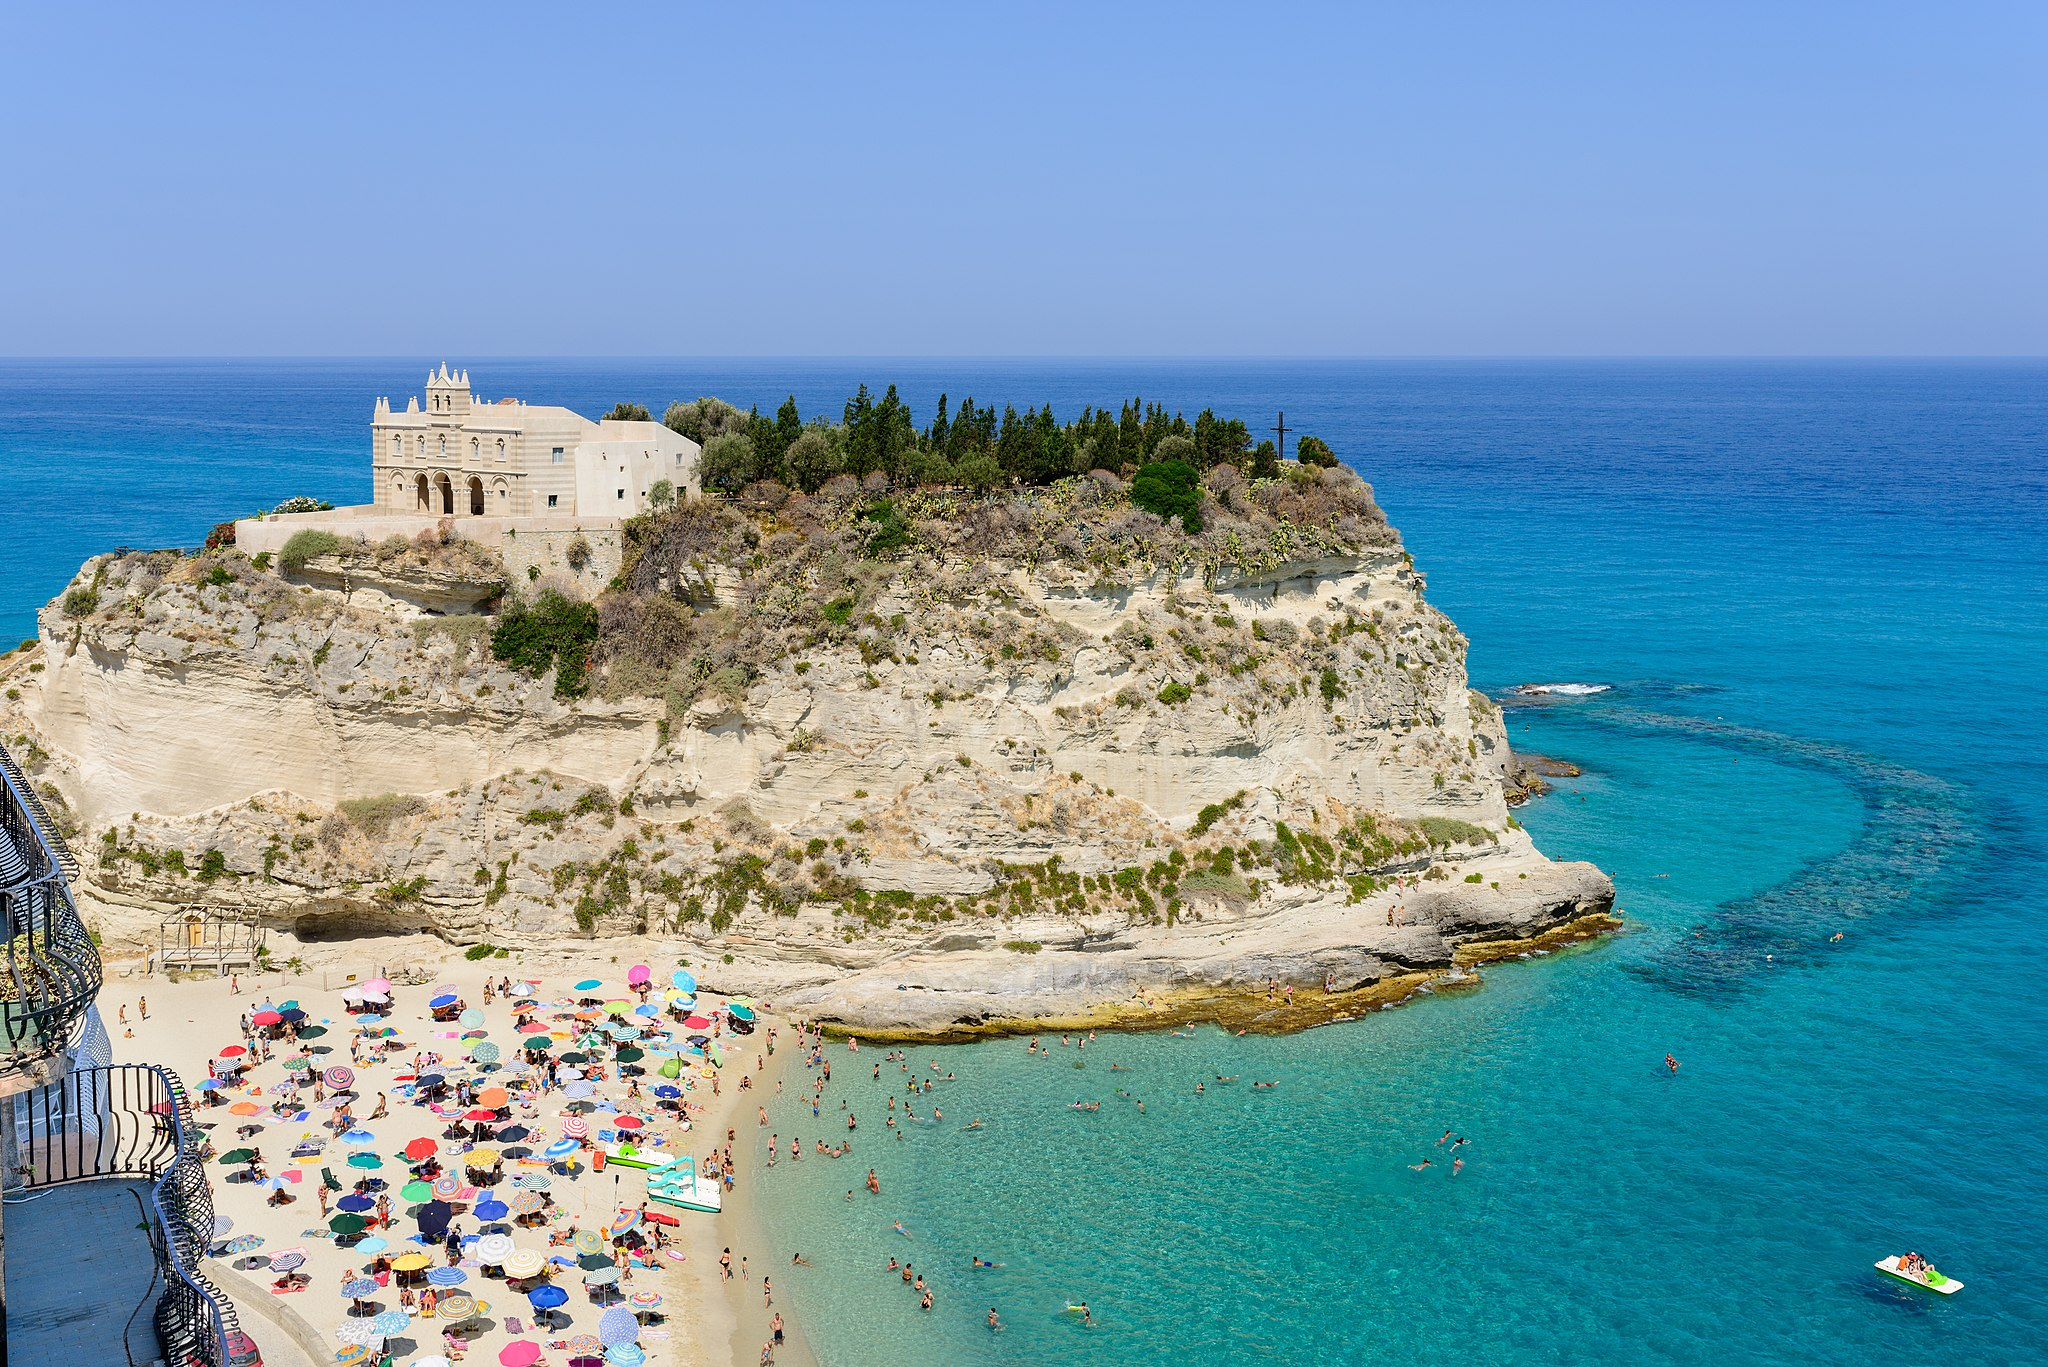 Santa Maria dell'Isola - Tropea - Calabria - Italy - July 17th 2013 - 03